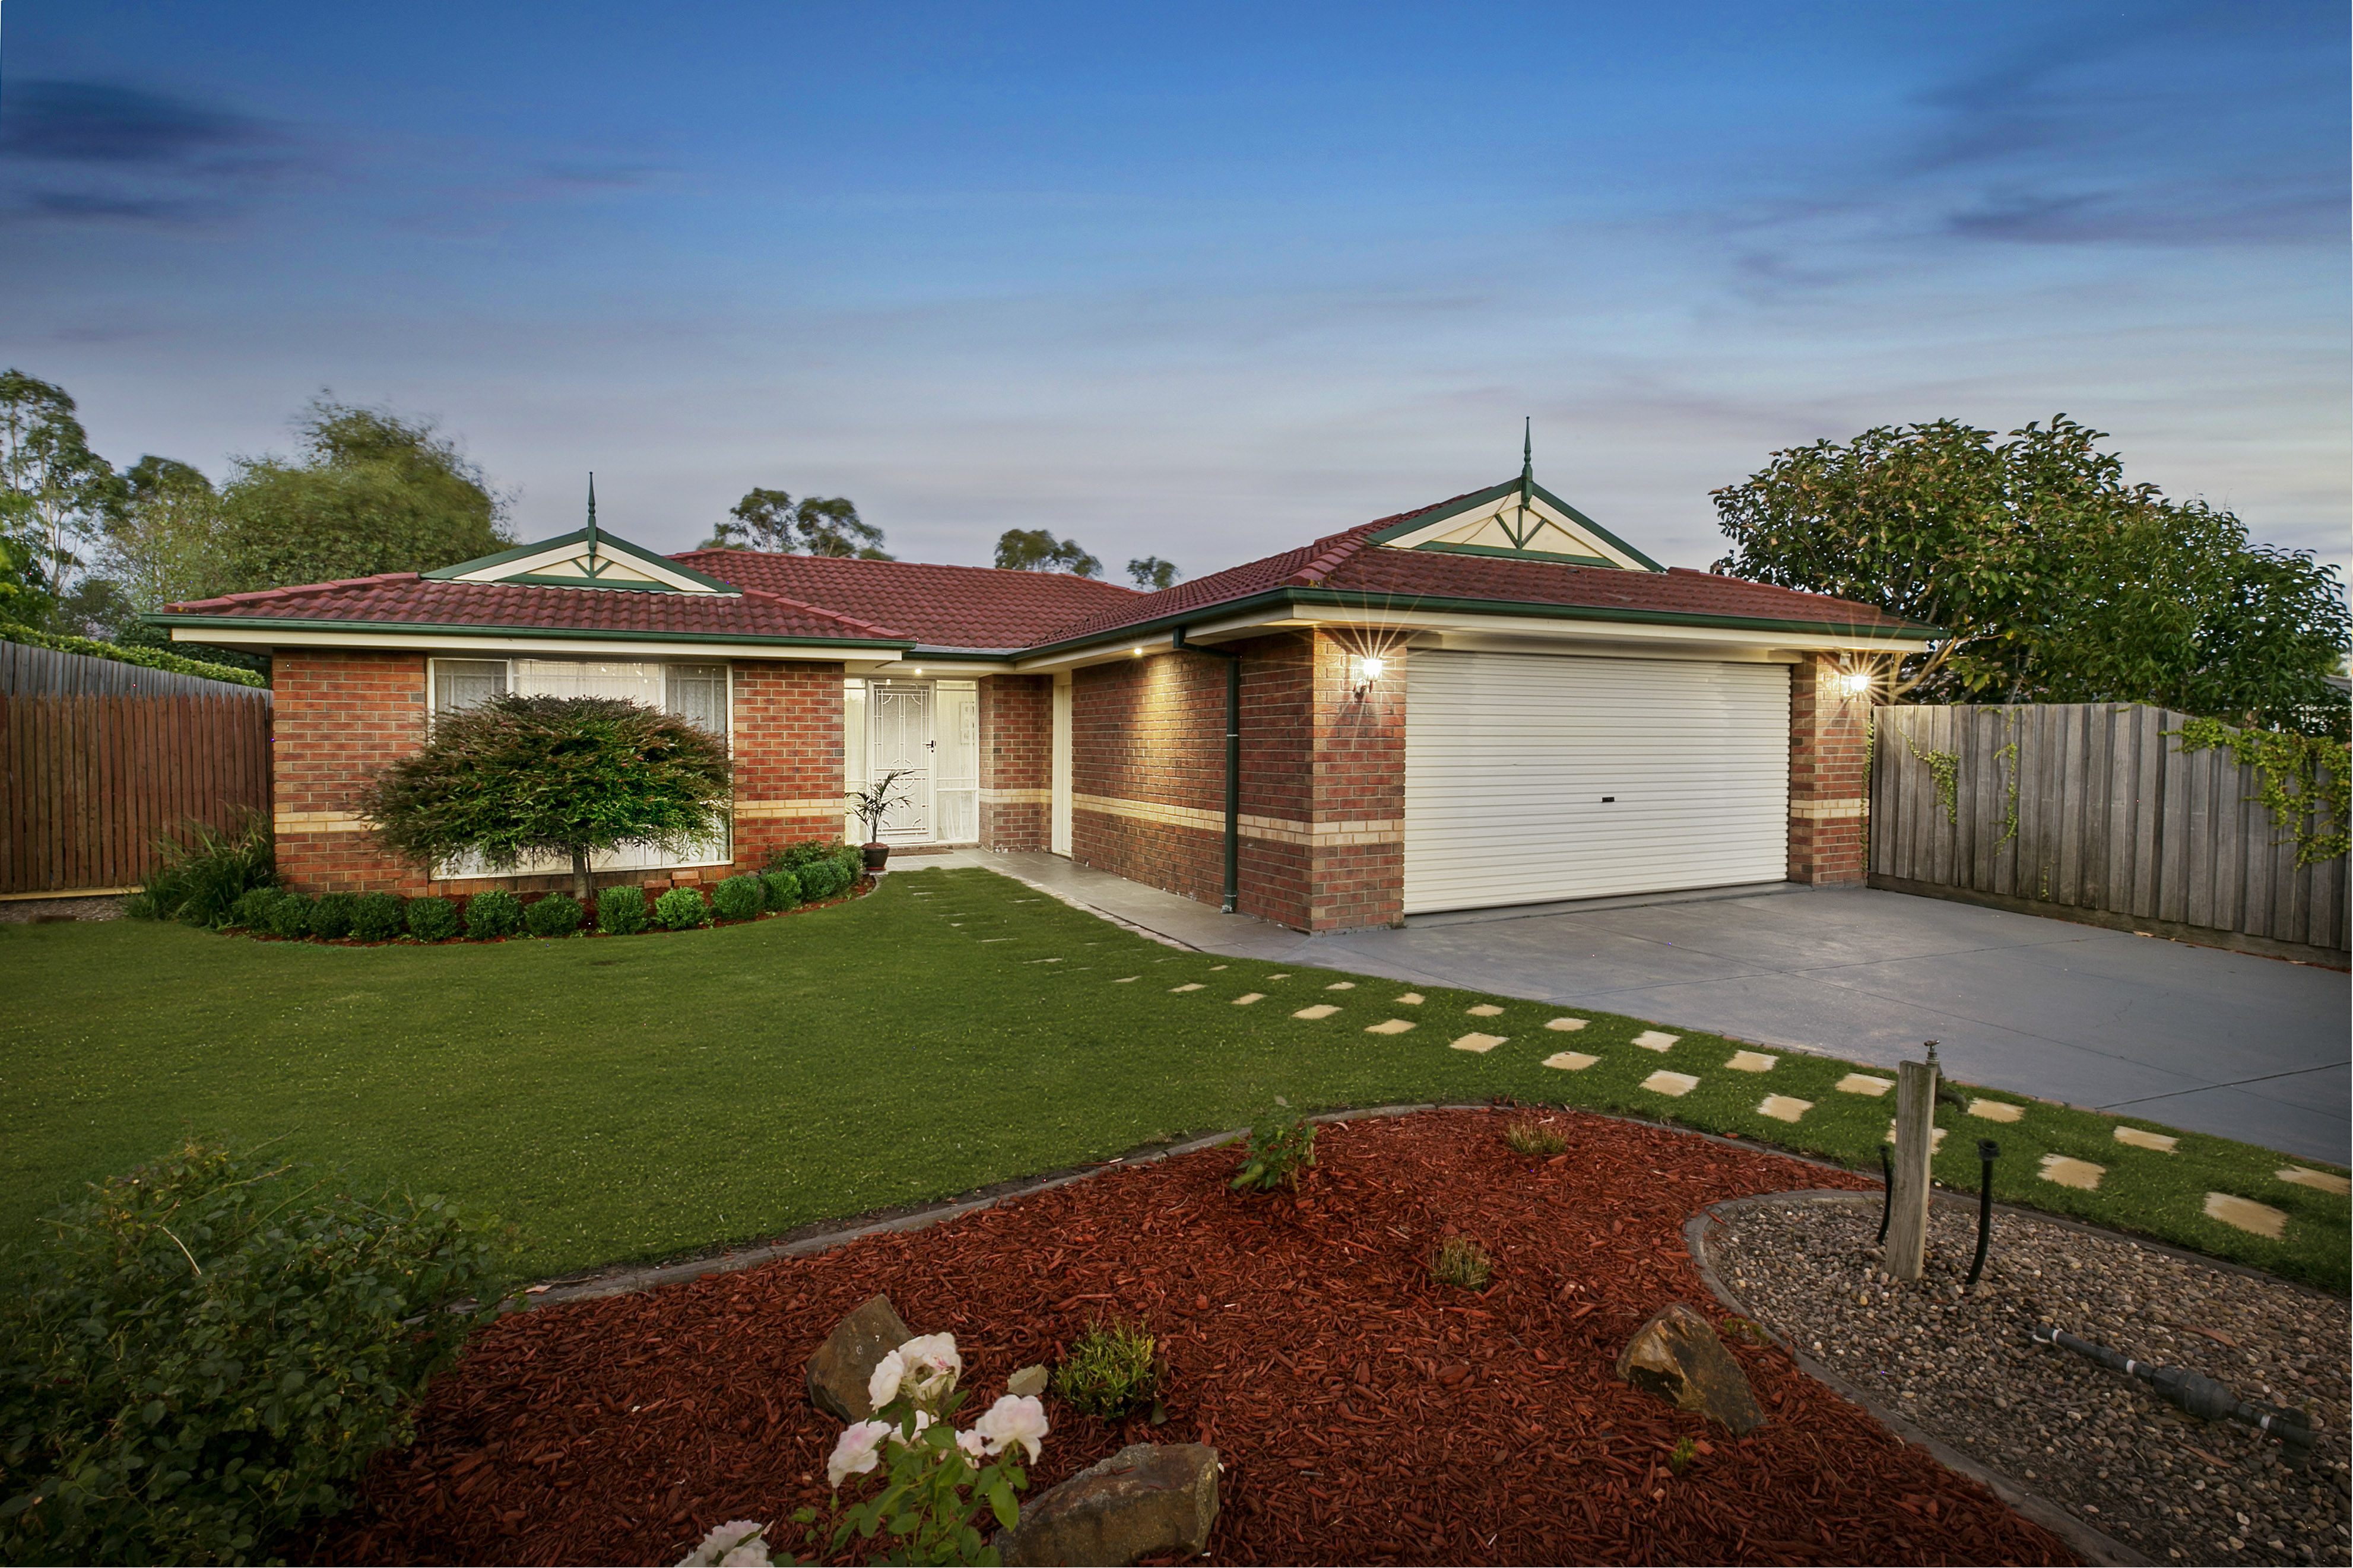 72 Earlsfield Drive, BERWICK, VIC, 3806 - Image